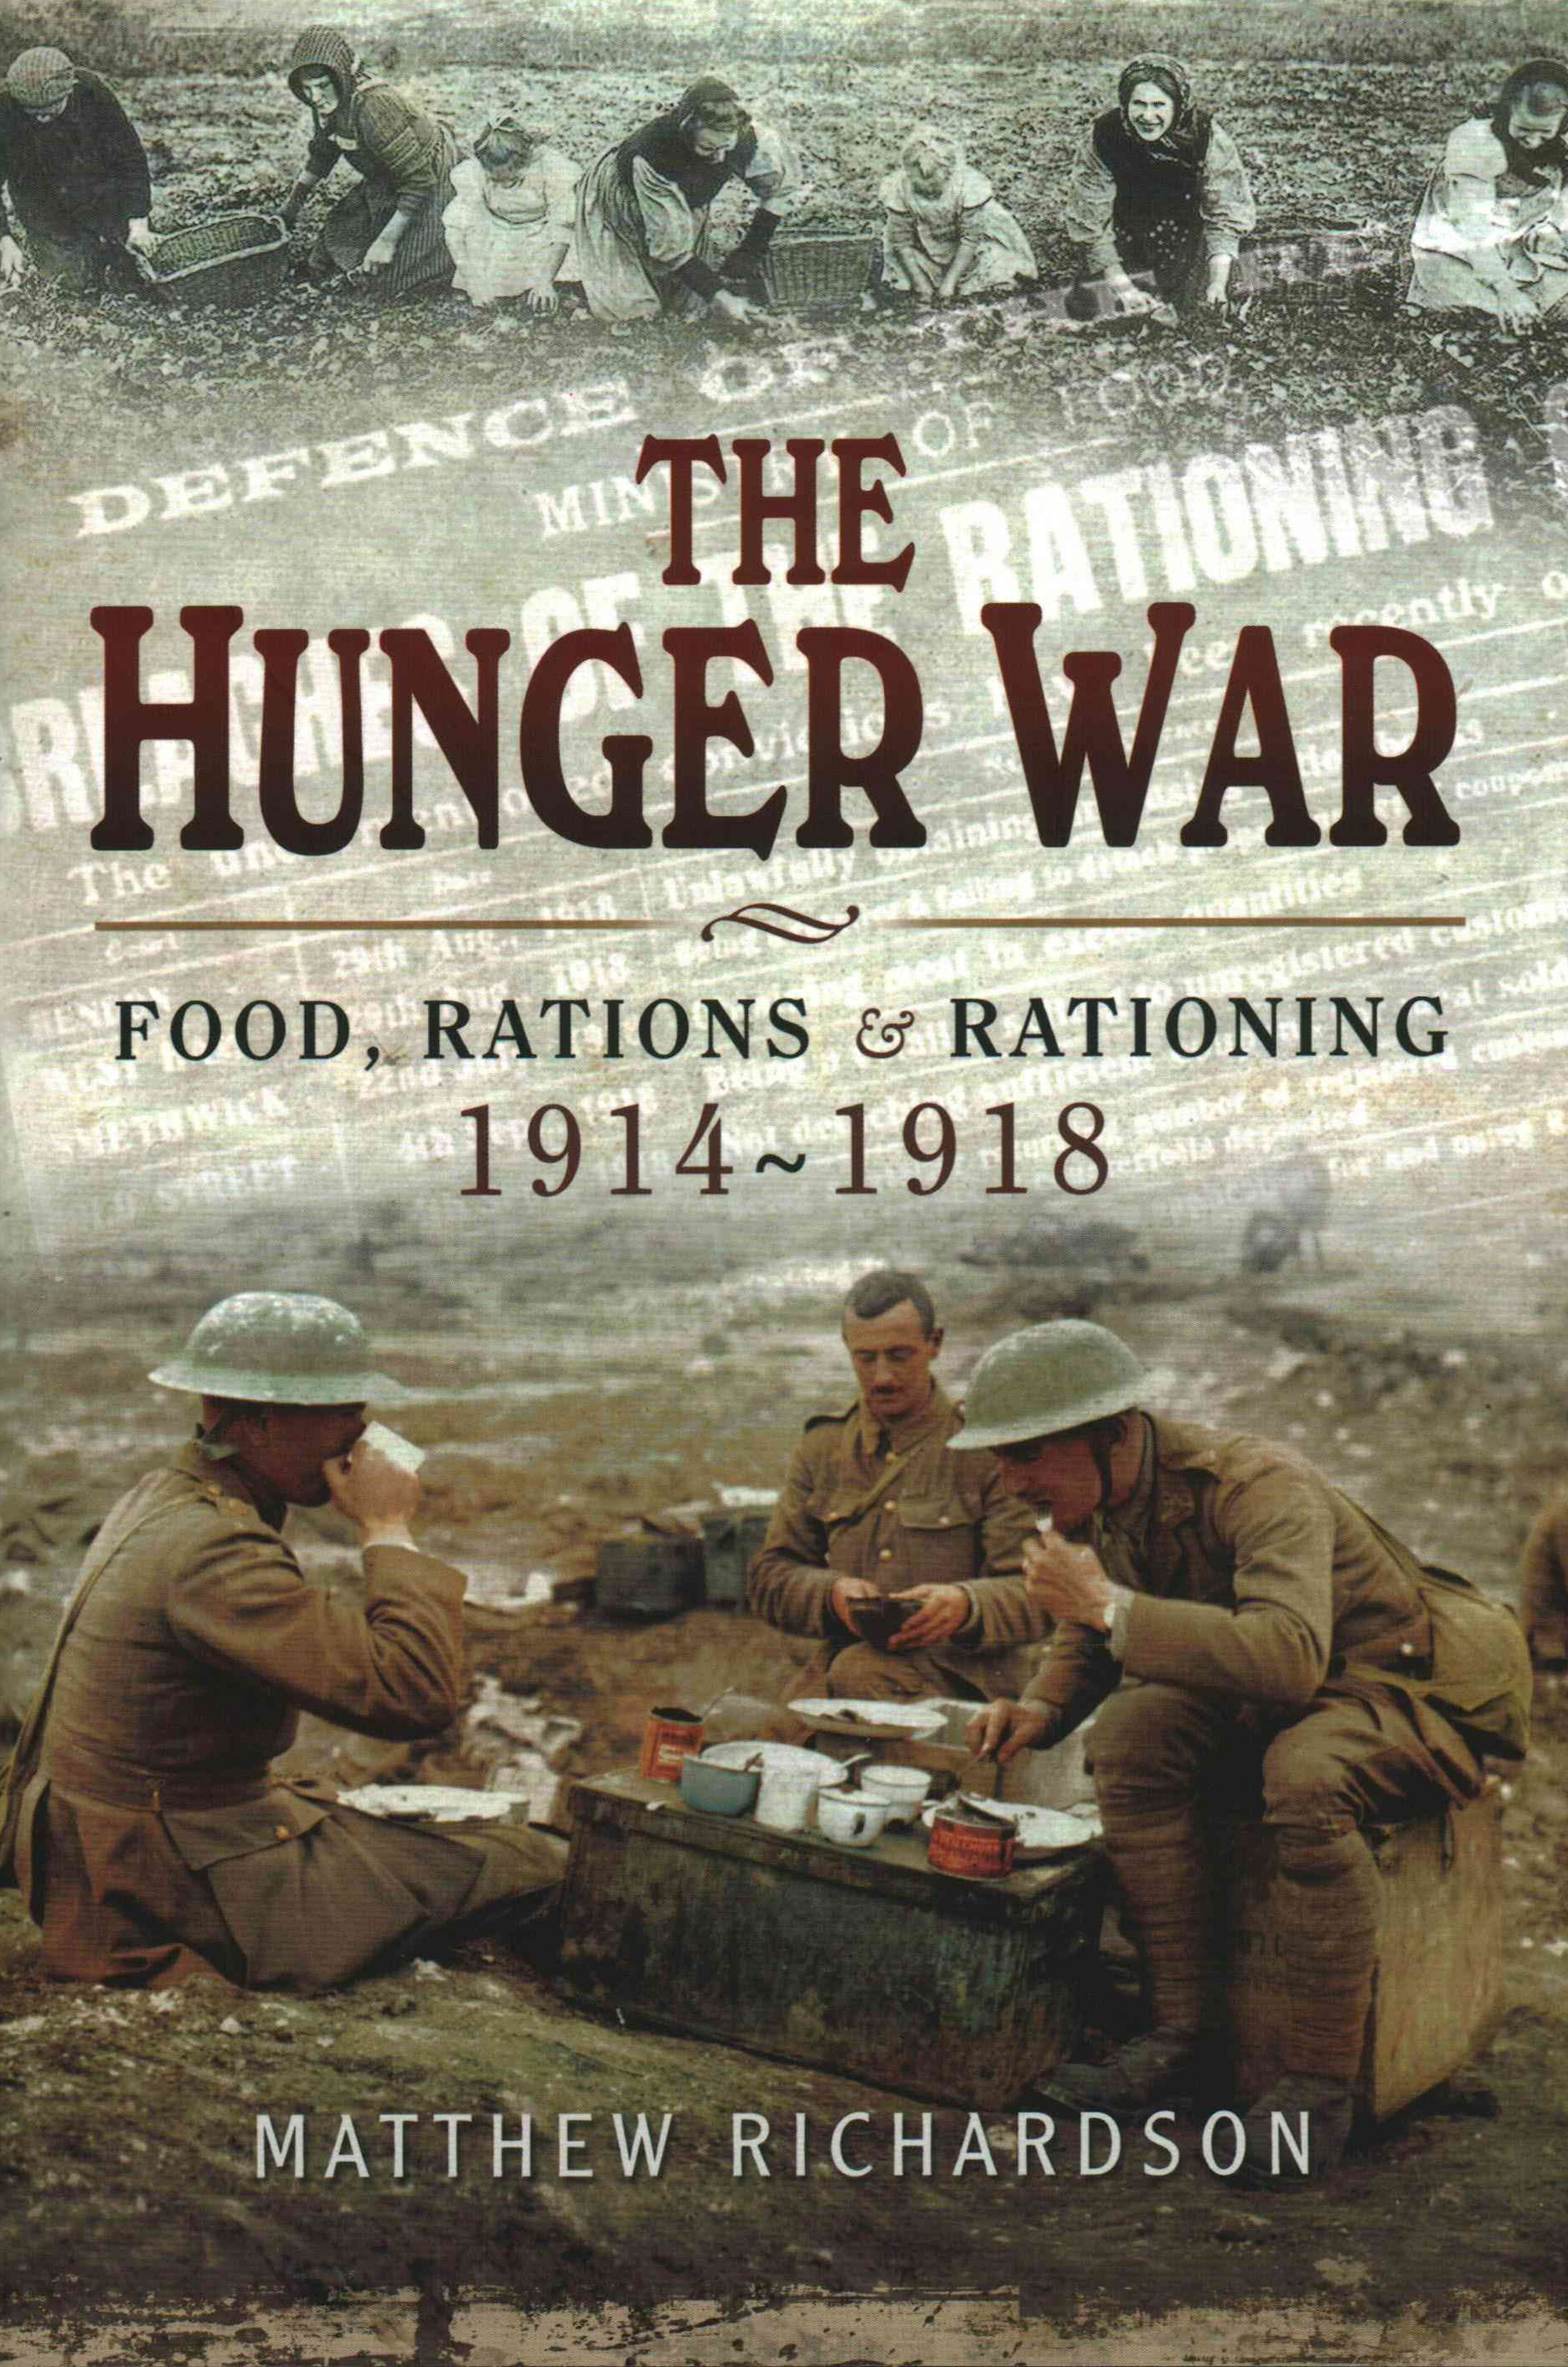 Hunger War: Food, Rations and Rationing 1914-1918